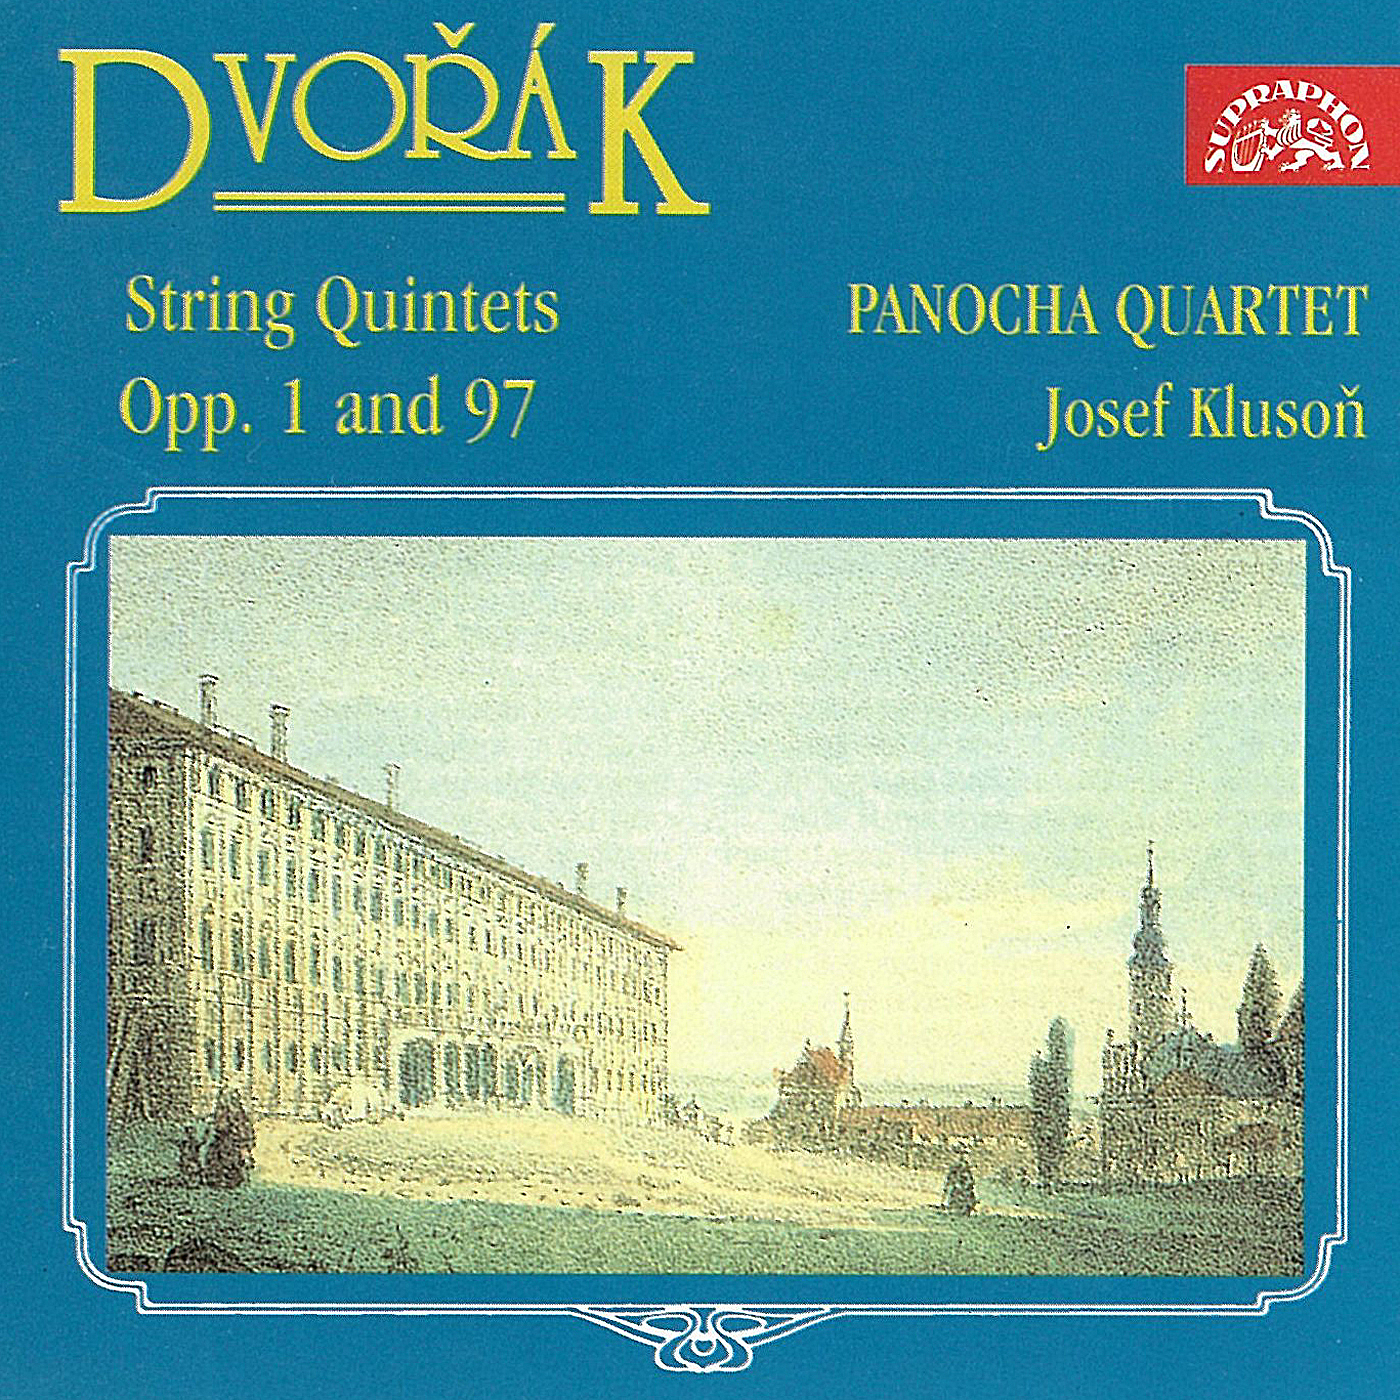 String Quintet for 2 Violin, 2 Violas and Cello in E flat major, Op. 97 (B. 180), III. Larghetto